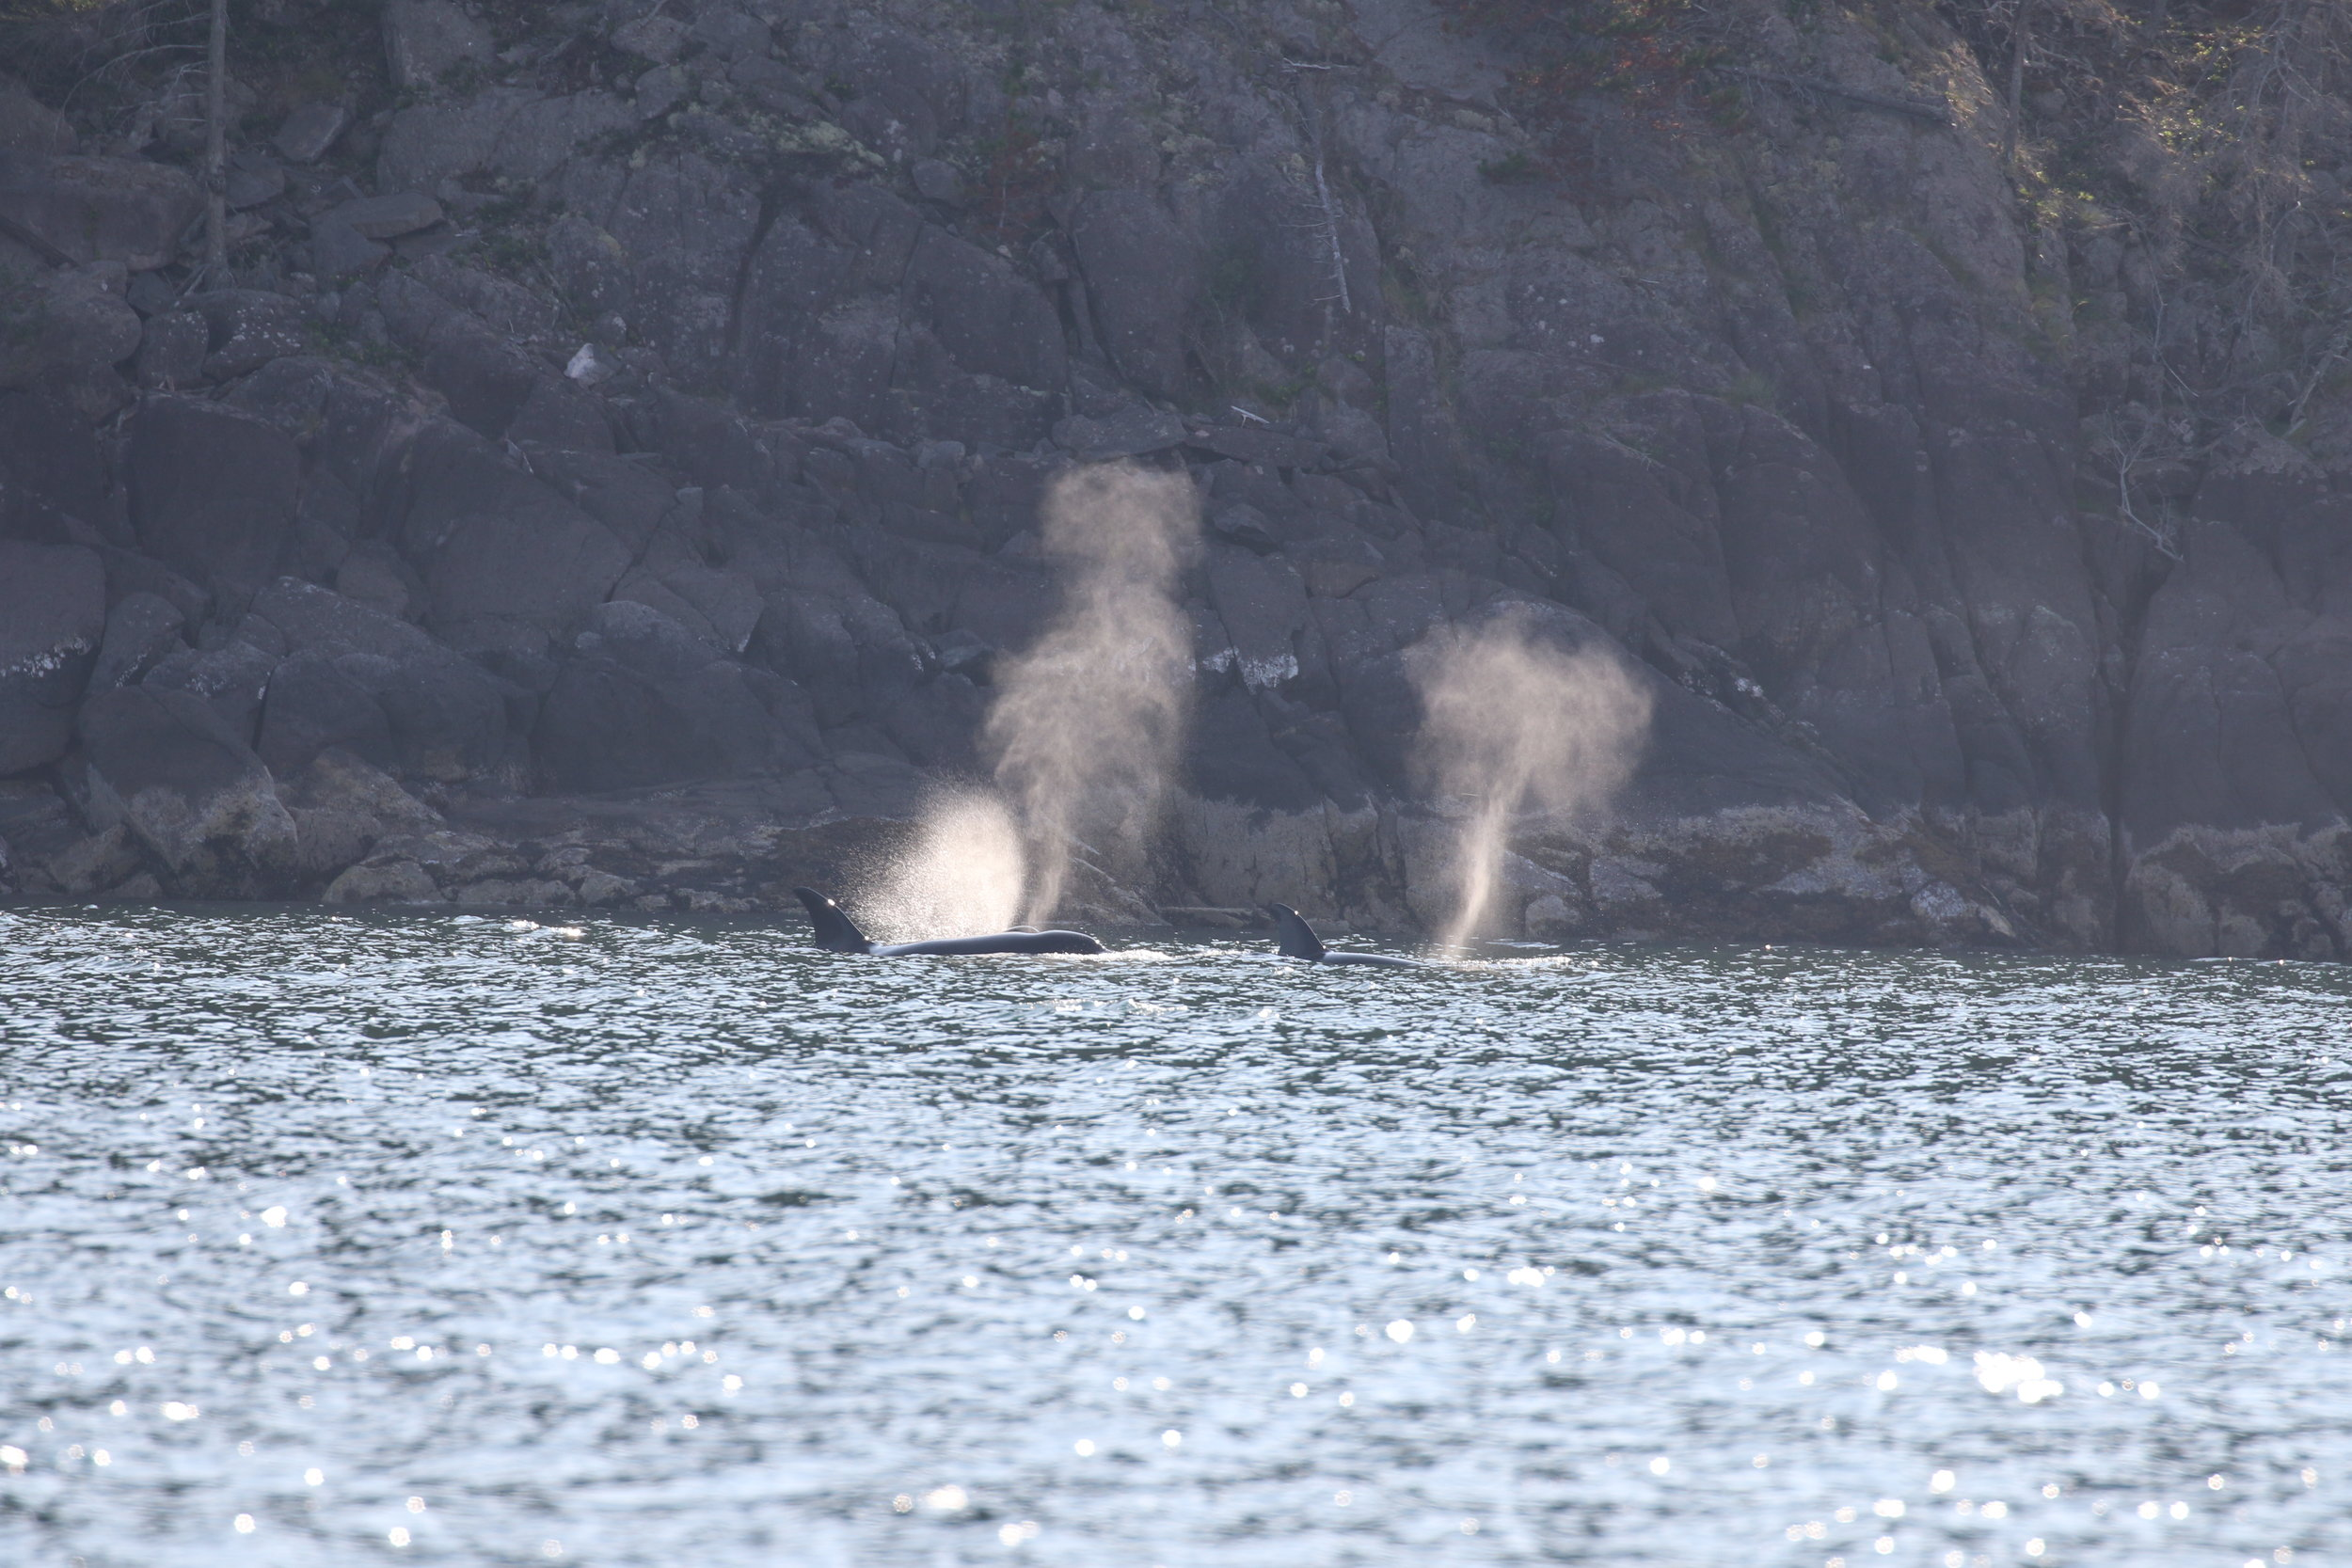 The whales hugging the shore line in Howe Sounds. Photo by Rebeka Pirker (3.30)